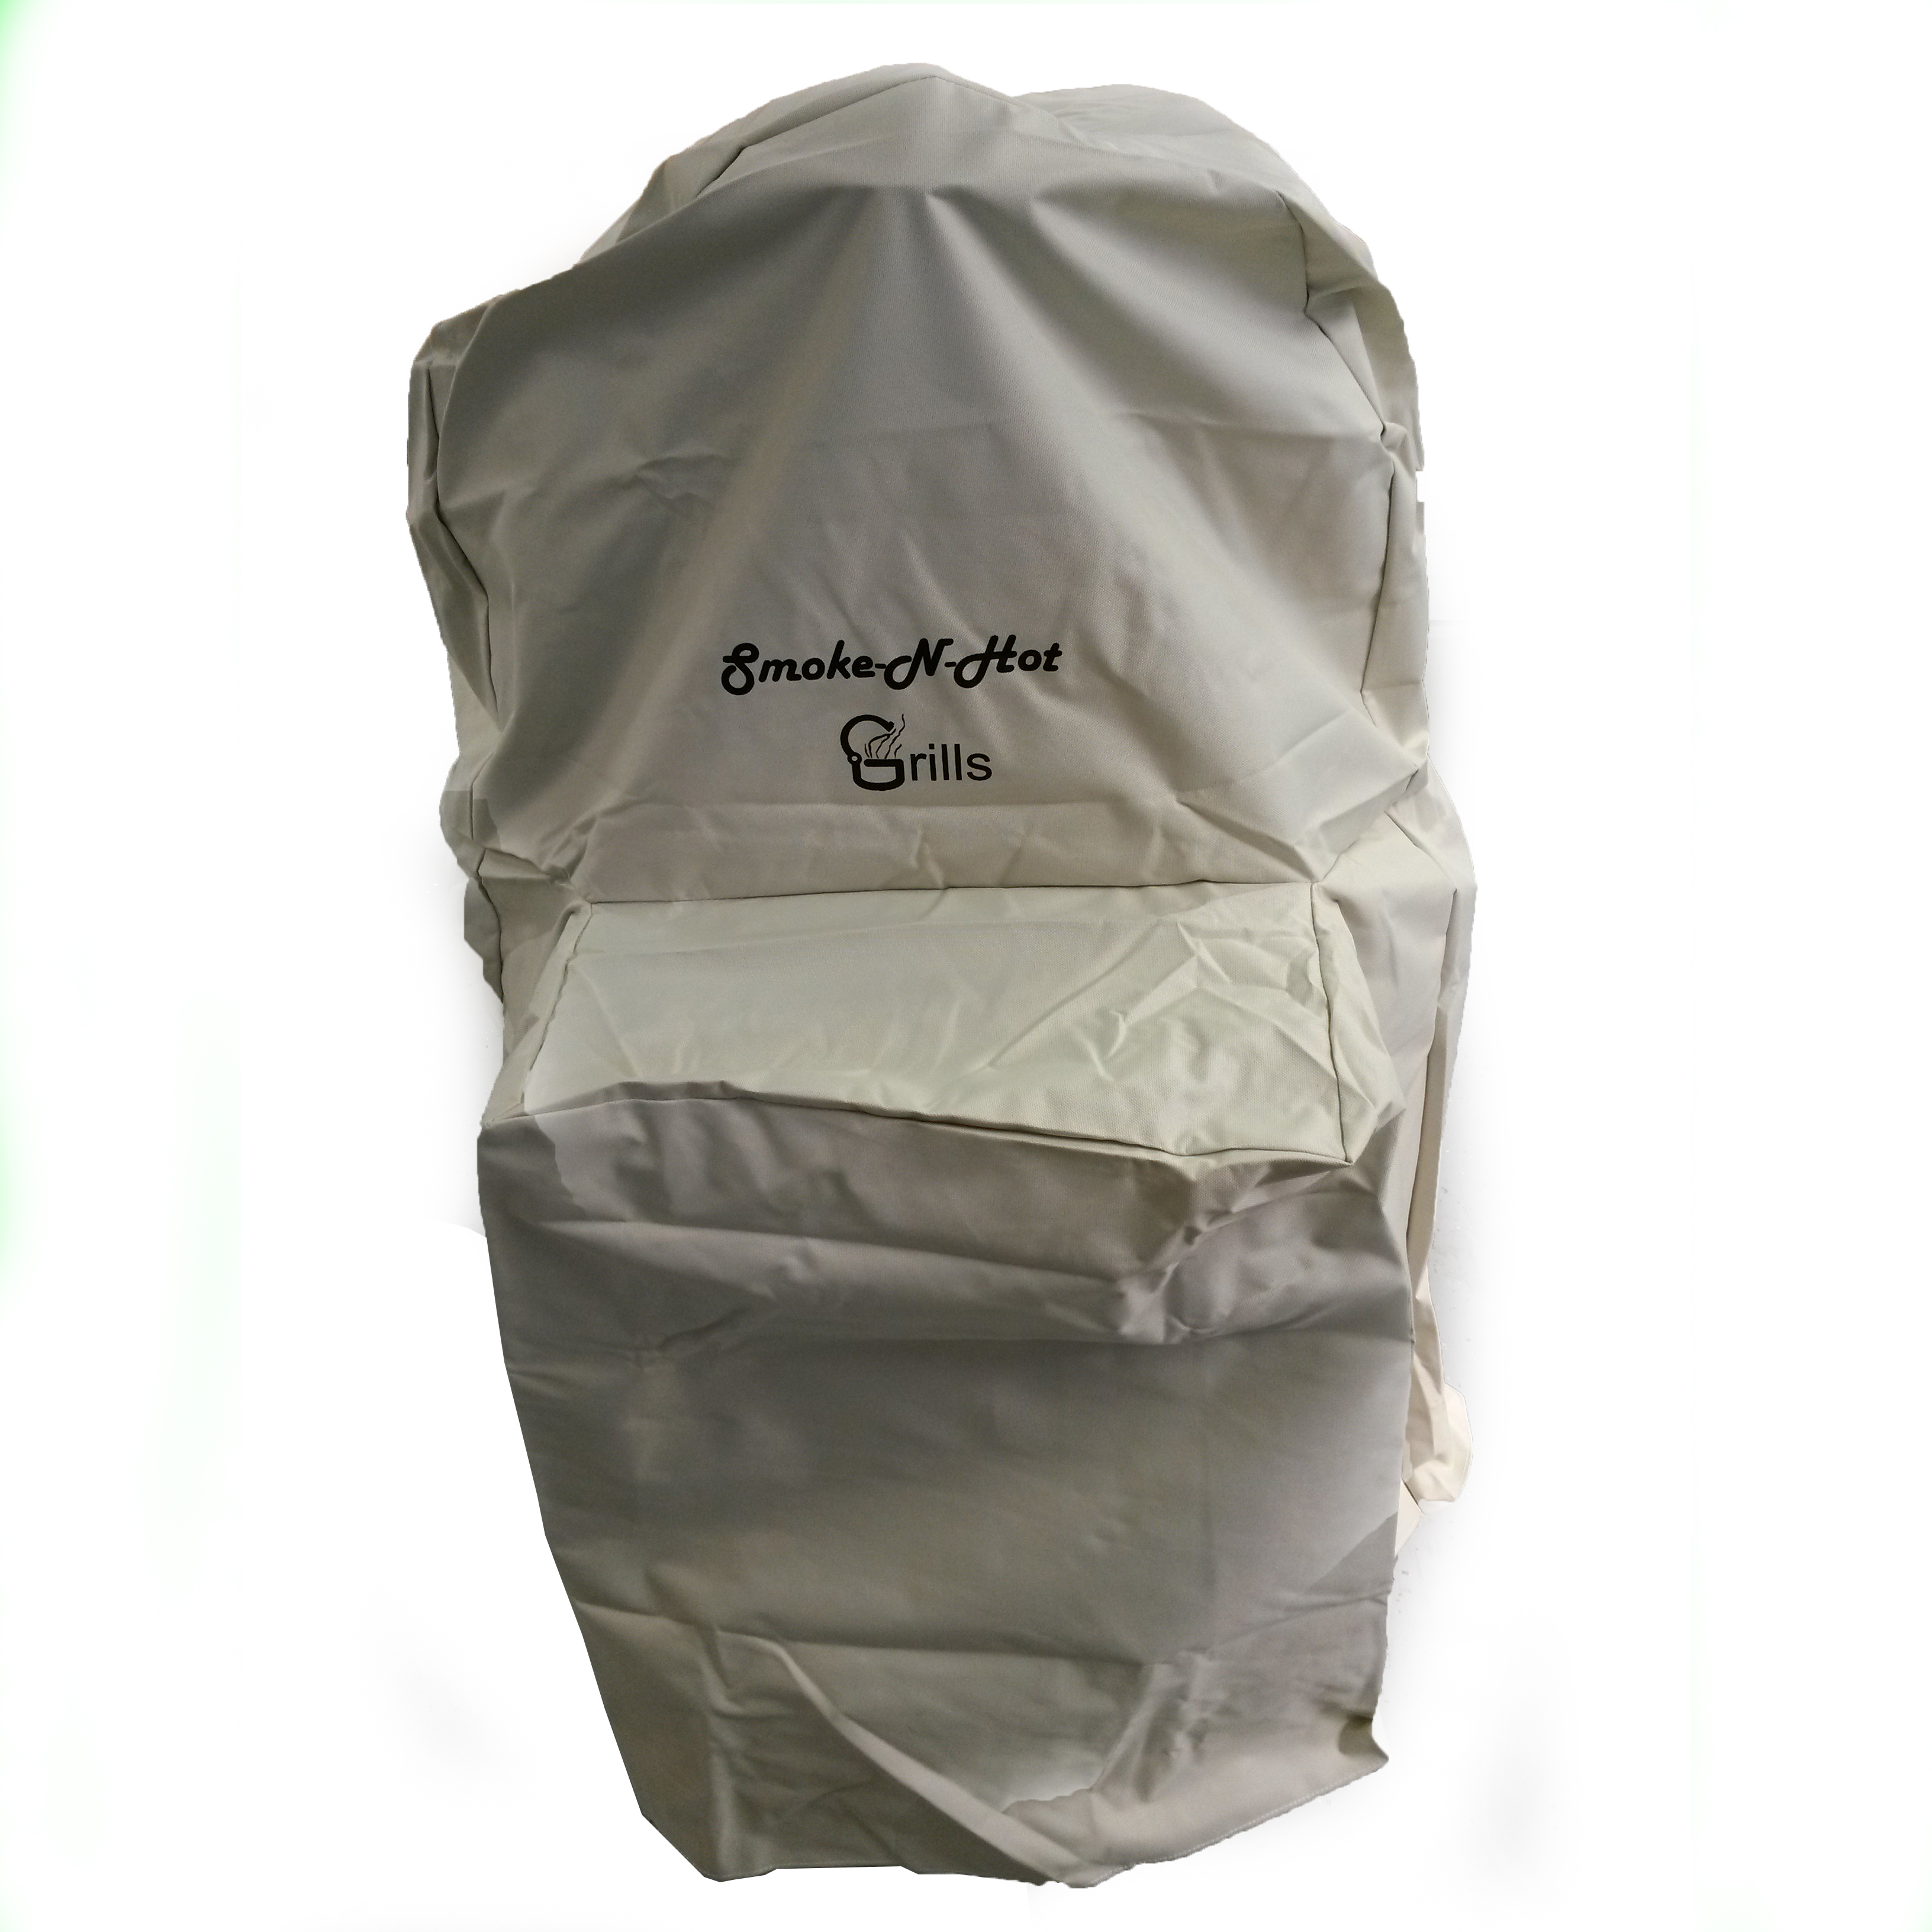 Smoke-N-Hot 606015532286 Outdoor Cooking Center Grill Cover